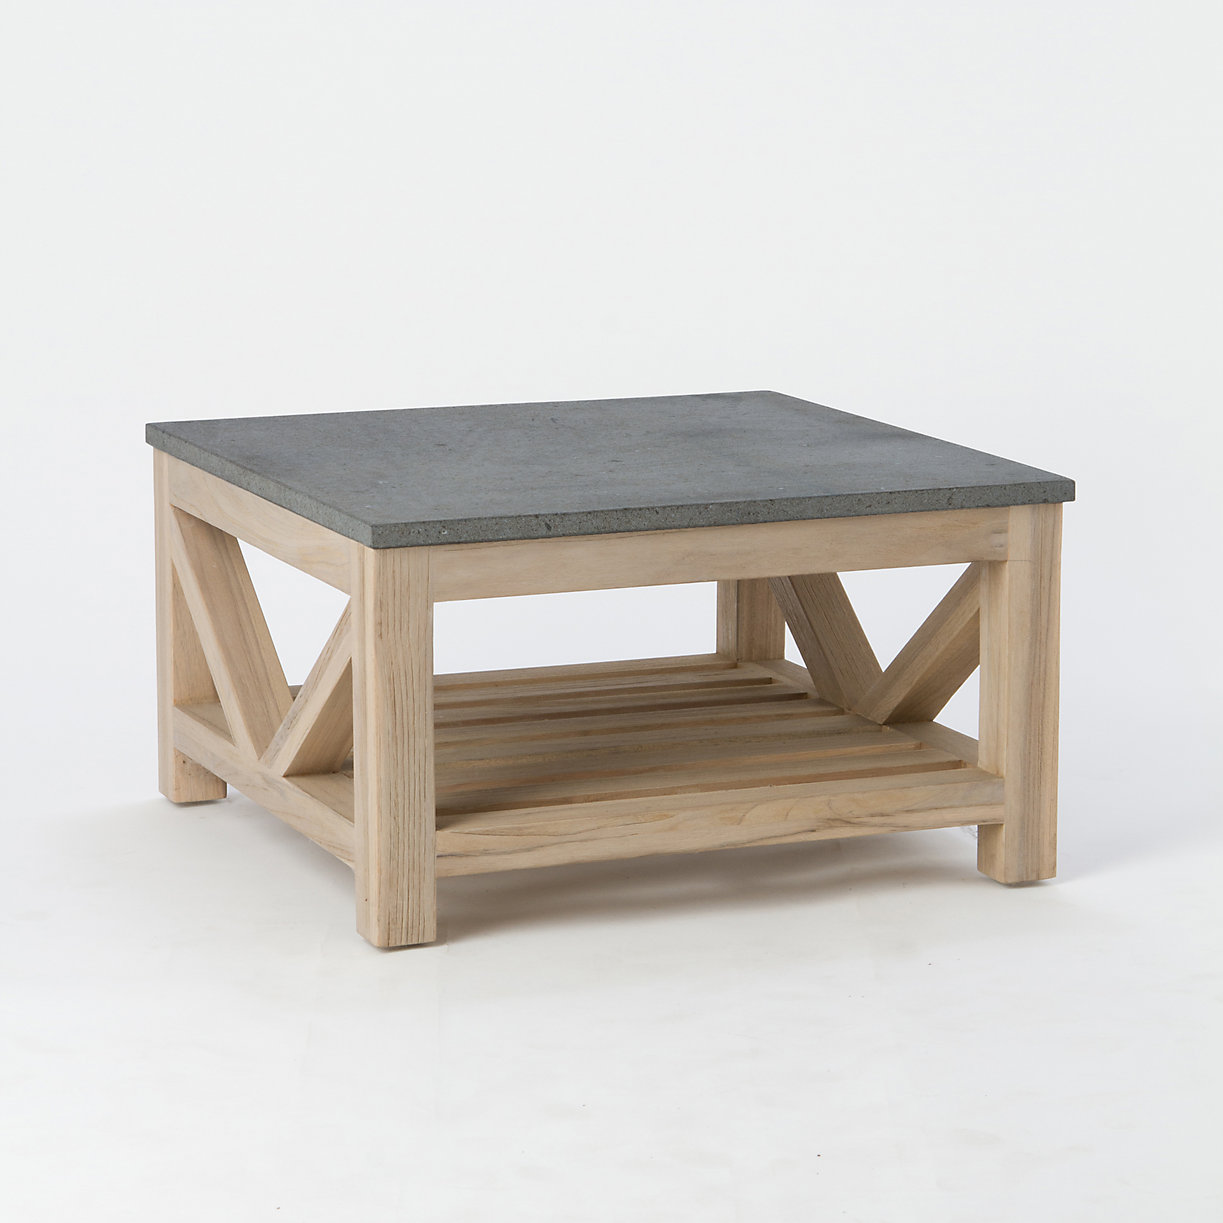 Product offer badge Stone & Teak Coffee Table ... - Outdoor Teak Furniture Terrain